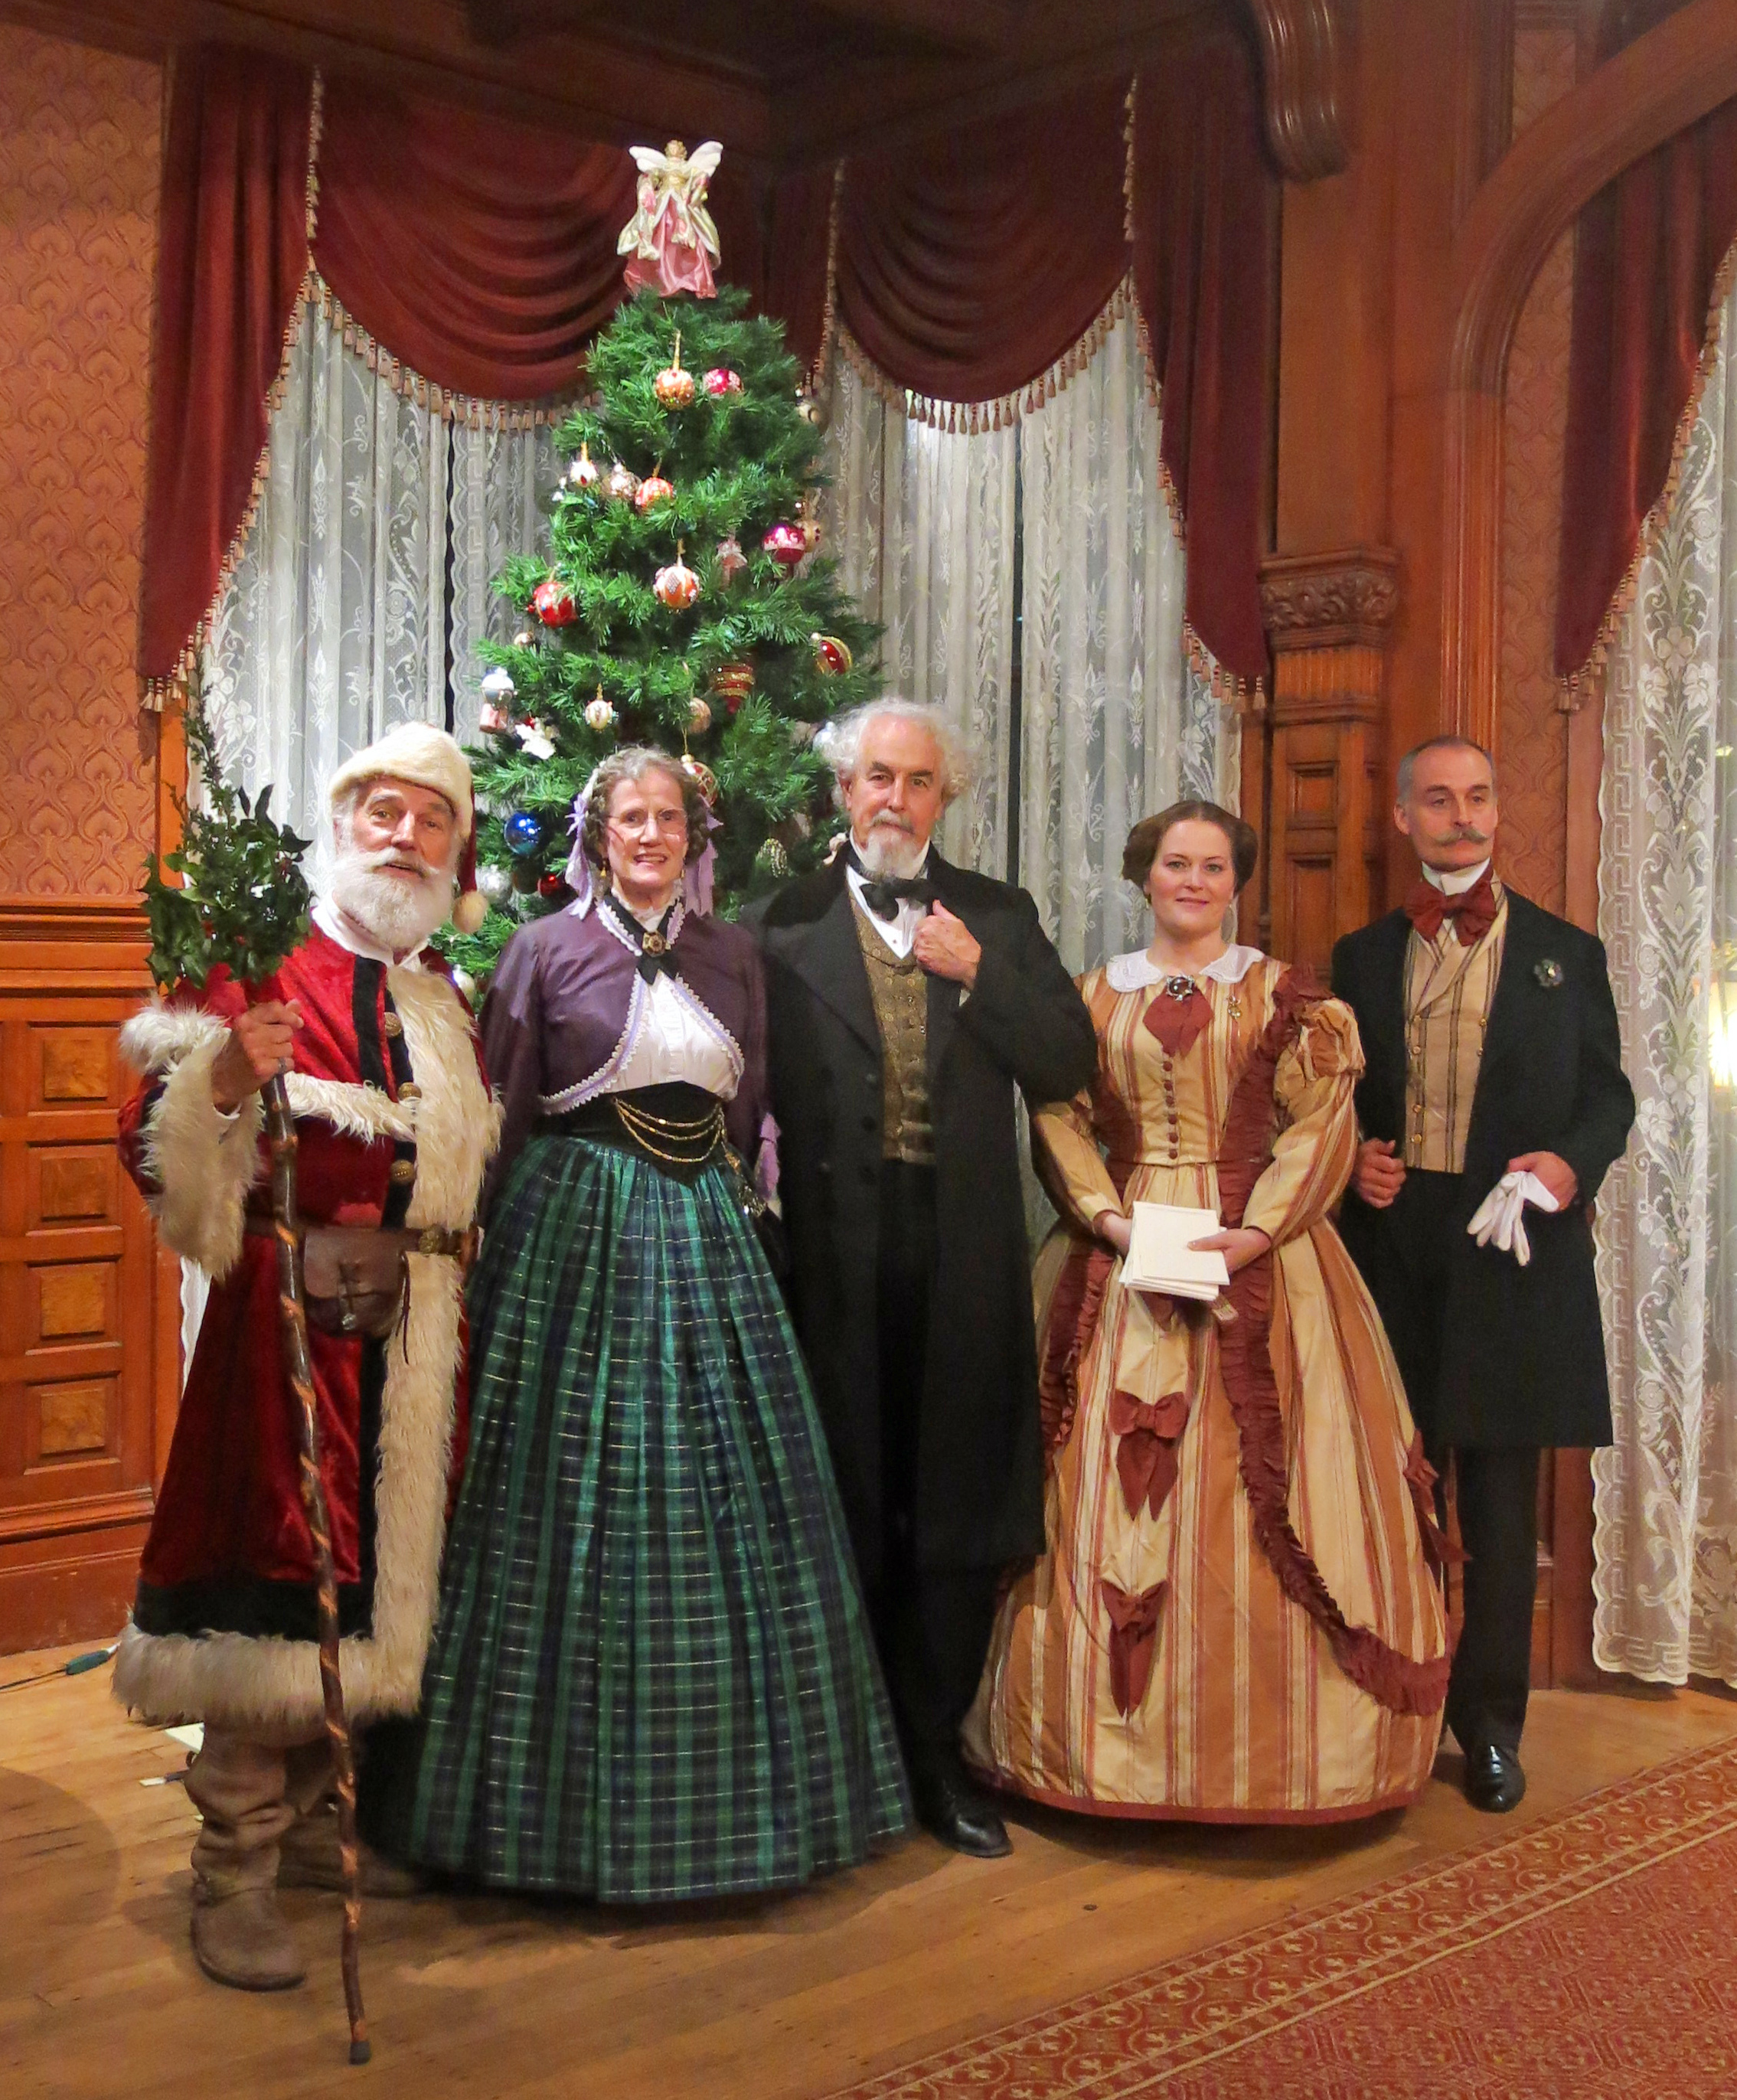 Dickens group posing in front of a christmas tree in Falkirk Cultural Center